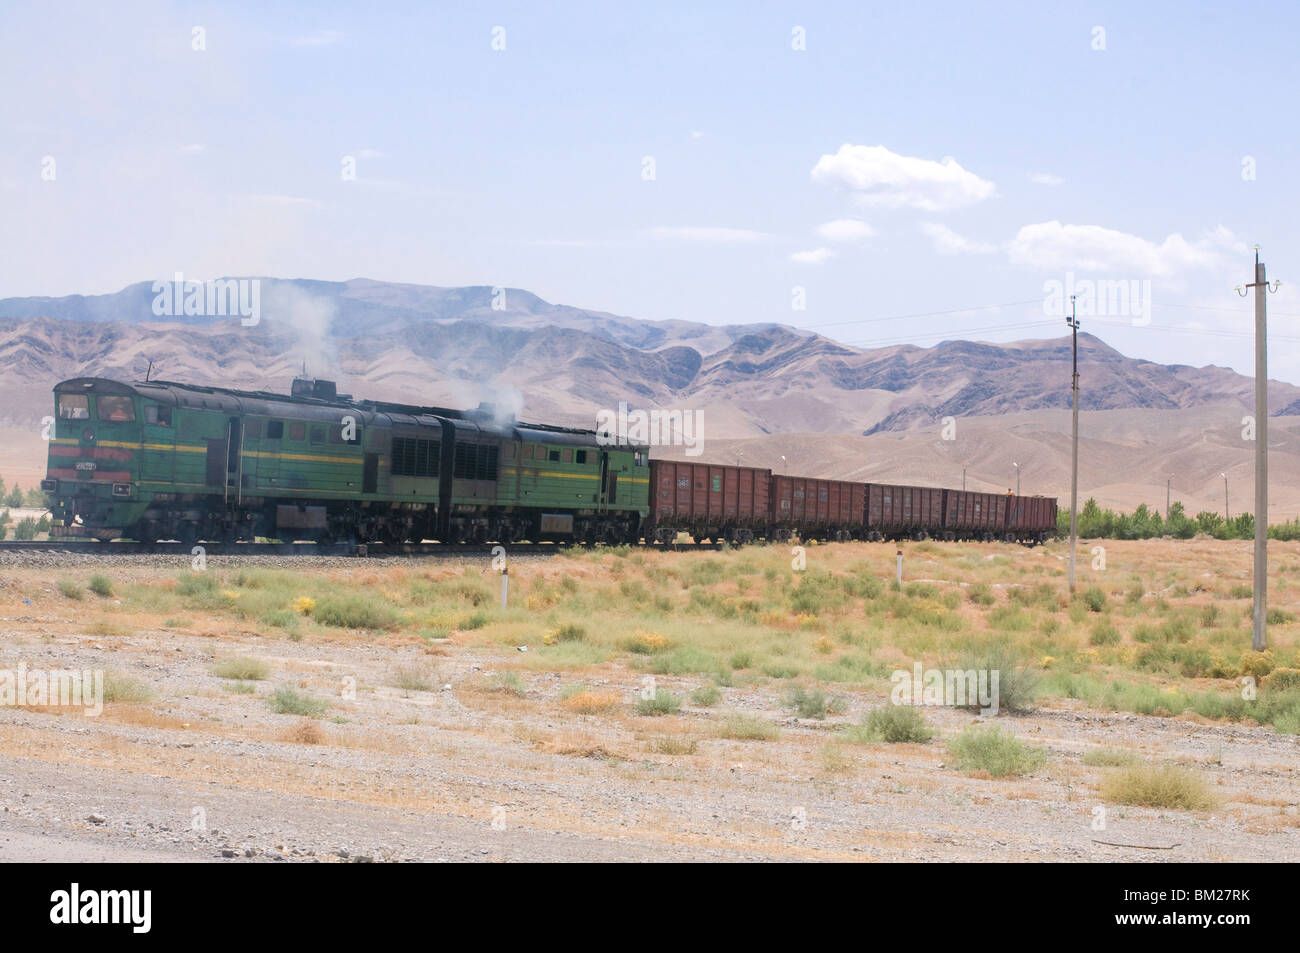 Railway crossing landscape, Geok-Depe, Turkmenistan, Central Asia, Asia - Stock Image